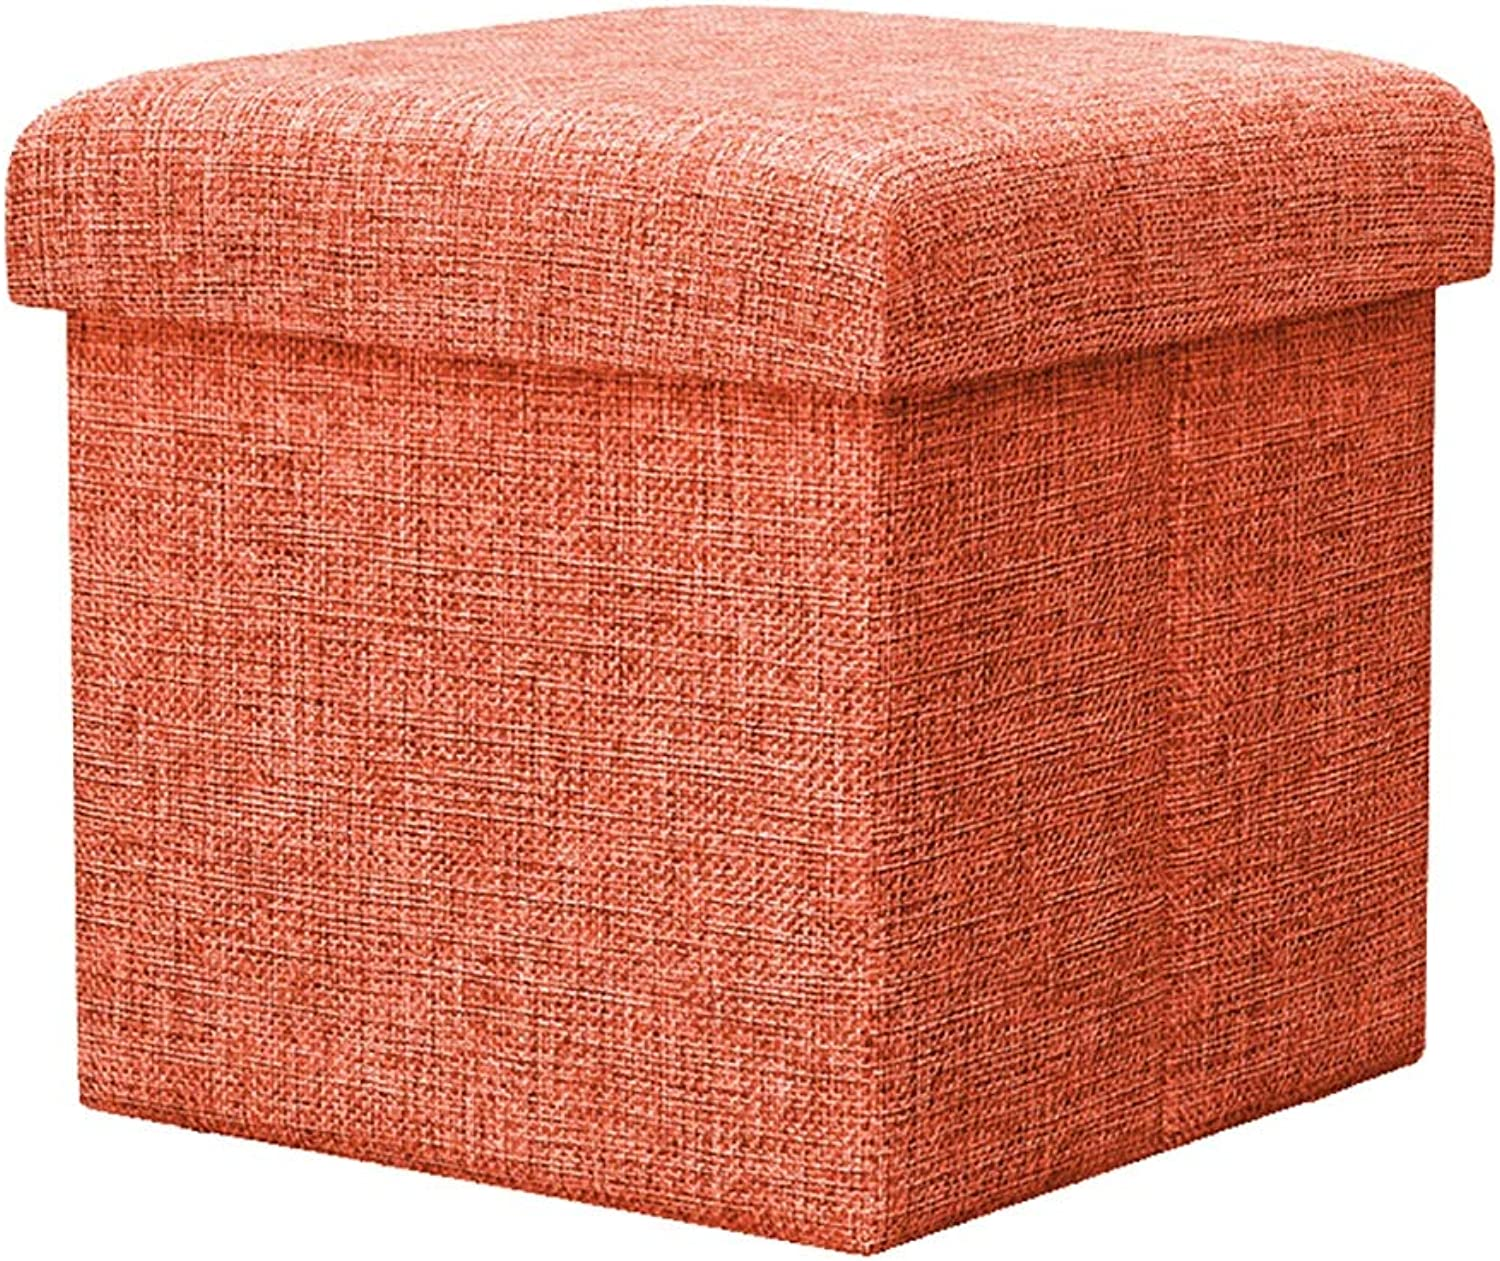 Square Footstool shoes Bench Storage Capacity 24L Stool Breathable wear-Resistant Easy to Clean Load Bearing Strong 30  30  30cm (color   orange)